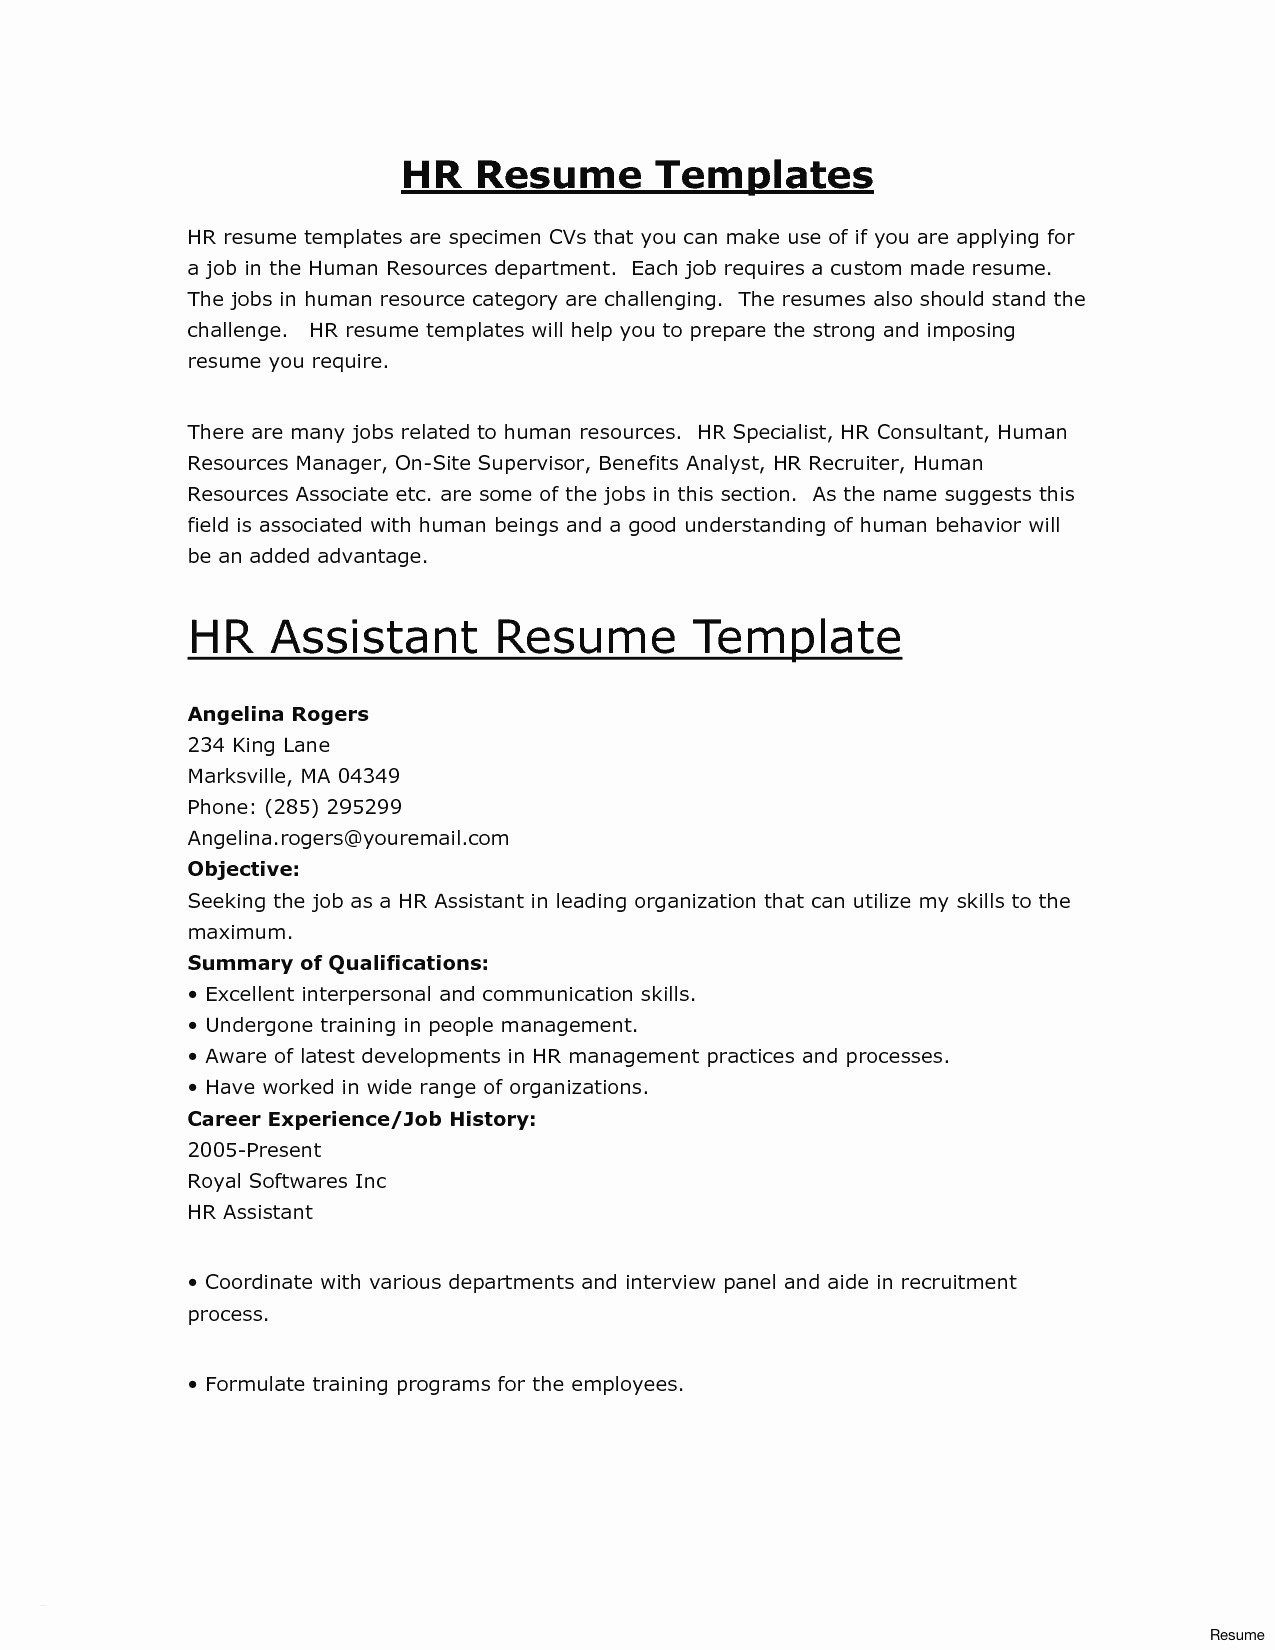 self employed resume template Collection-Self Employed Resume New Luxury Examples Resumes Ecologist Resume 0d Information 11-b